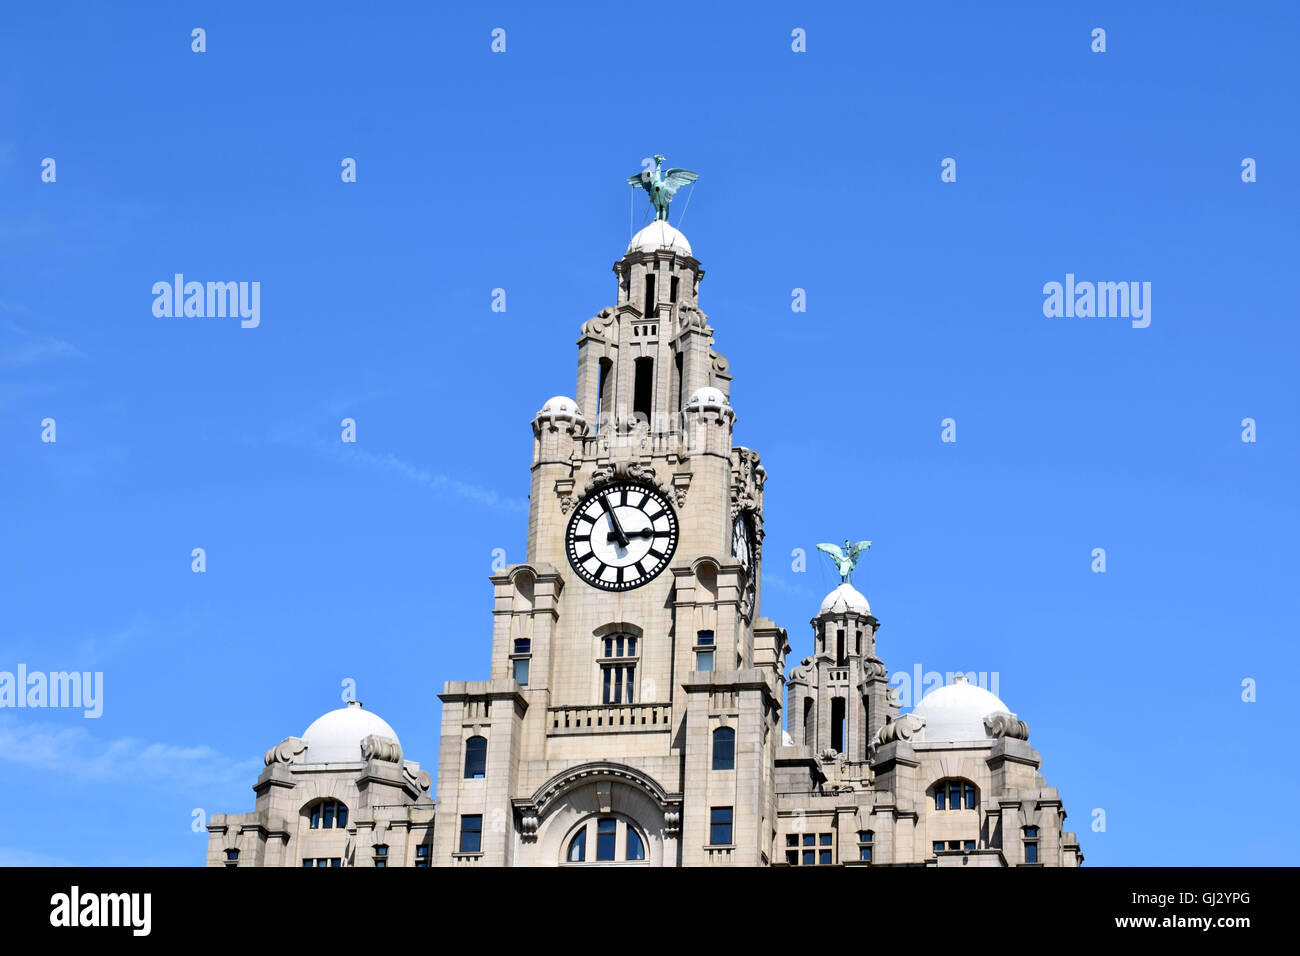 Liverpool liver building - Stock Image